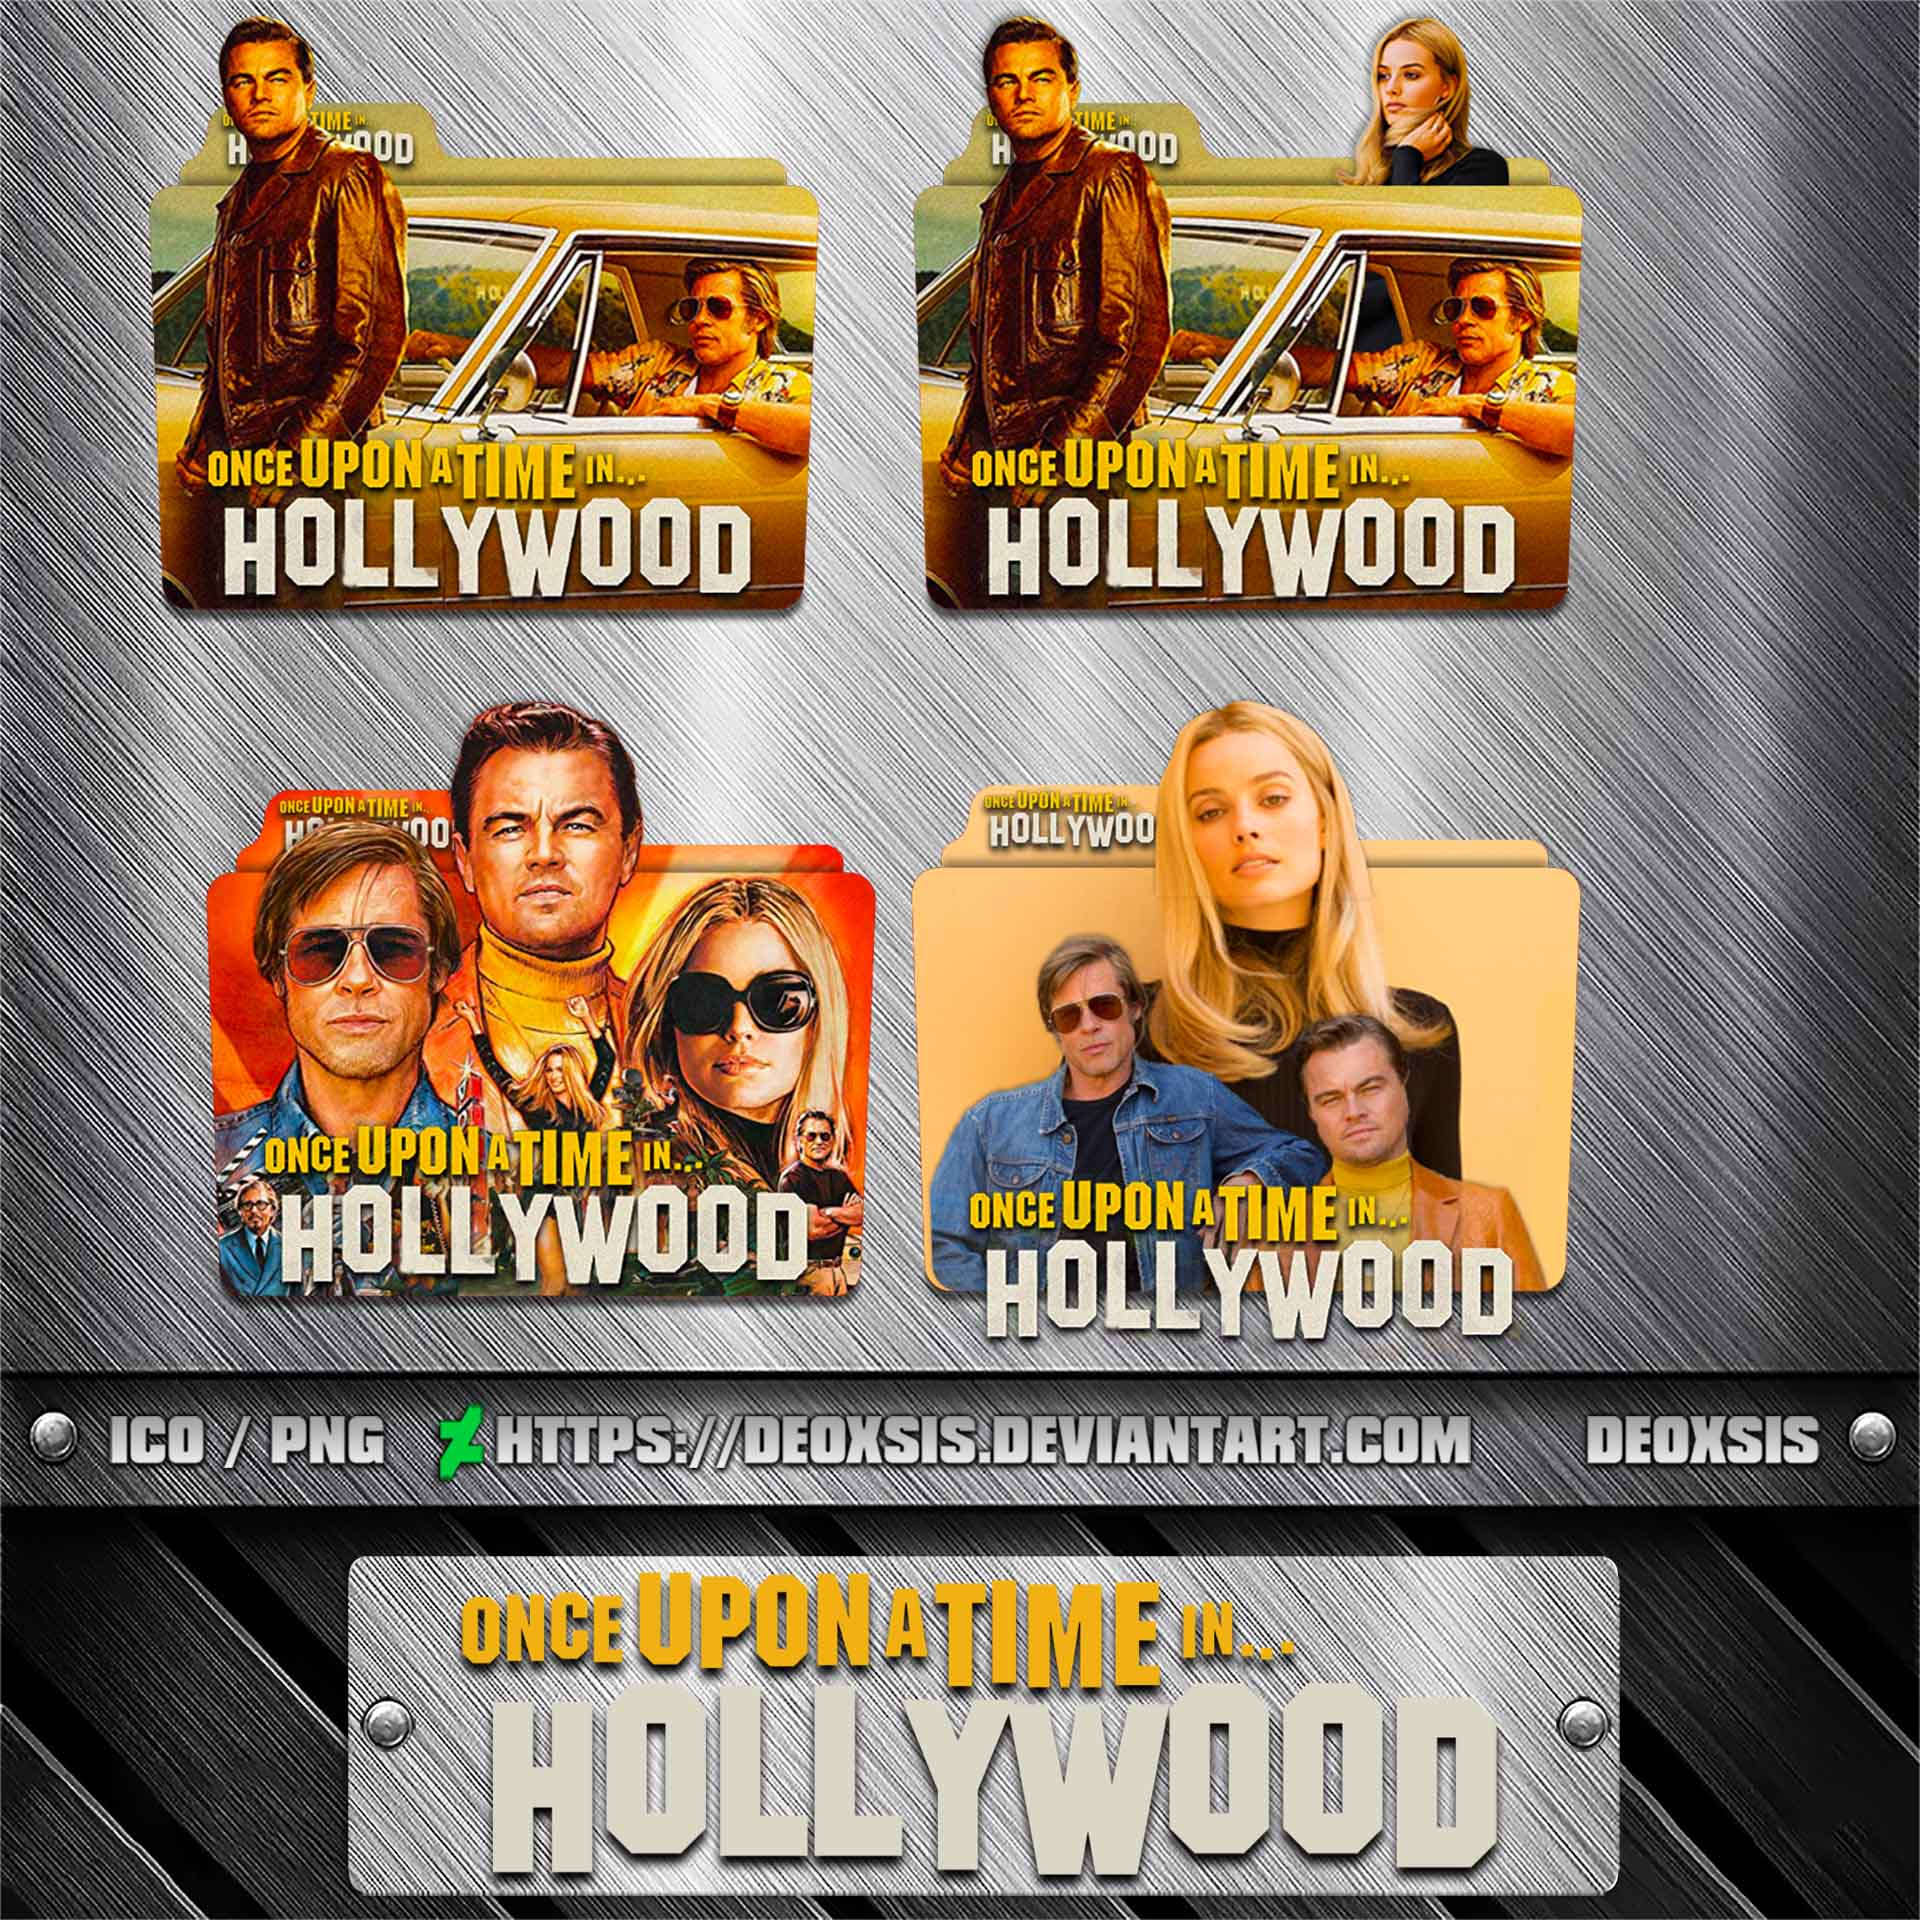 Once Upon A Time In Hollywood 2019 Folder Icon By Deoxsis On Deviantart